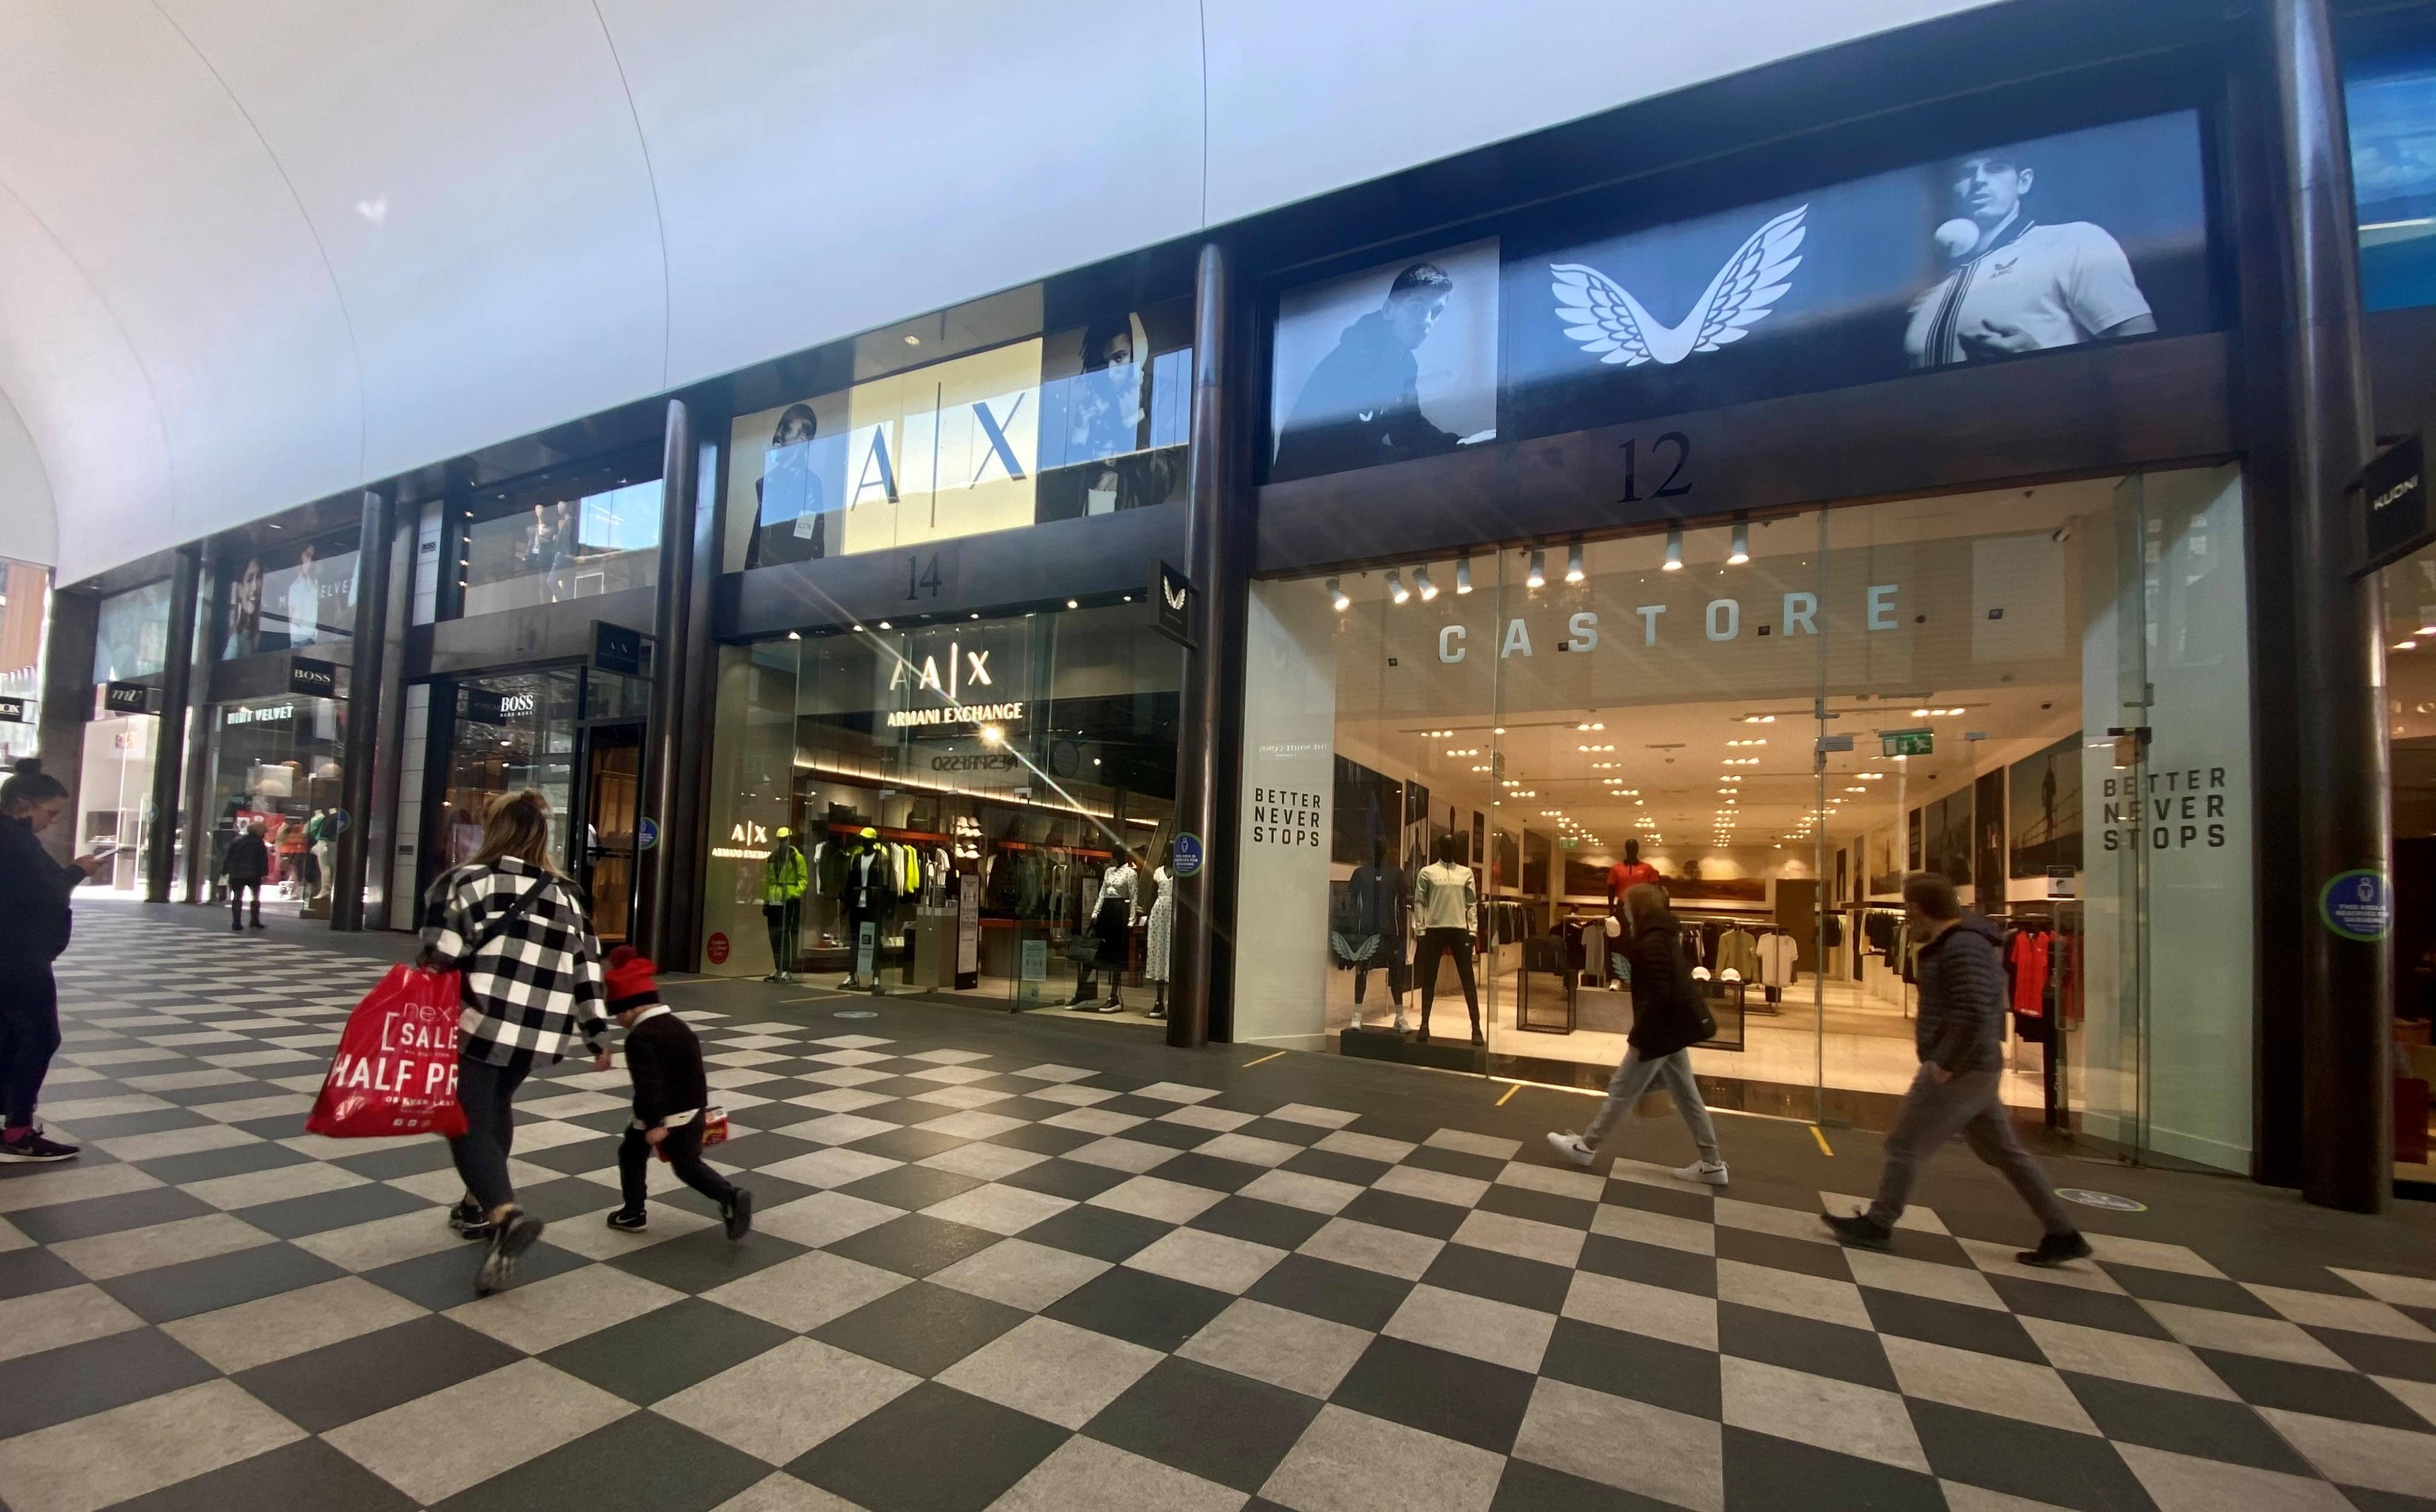 Castore opens upsized store at Liverpool One